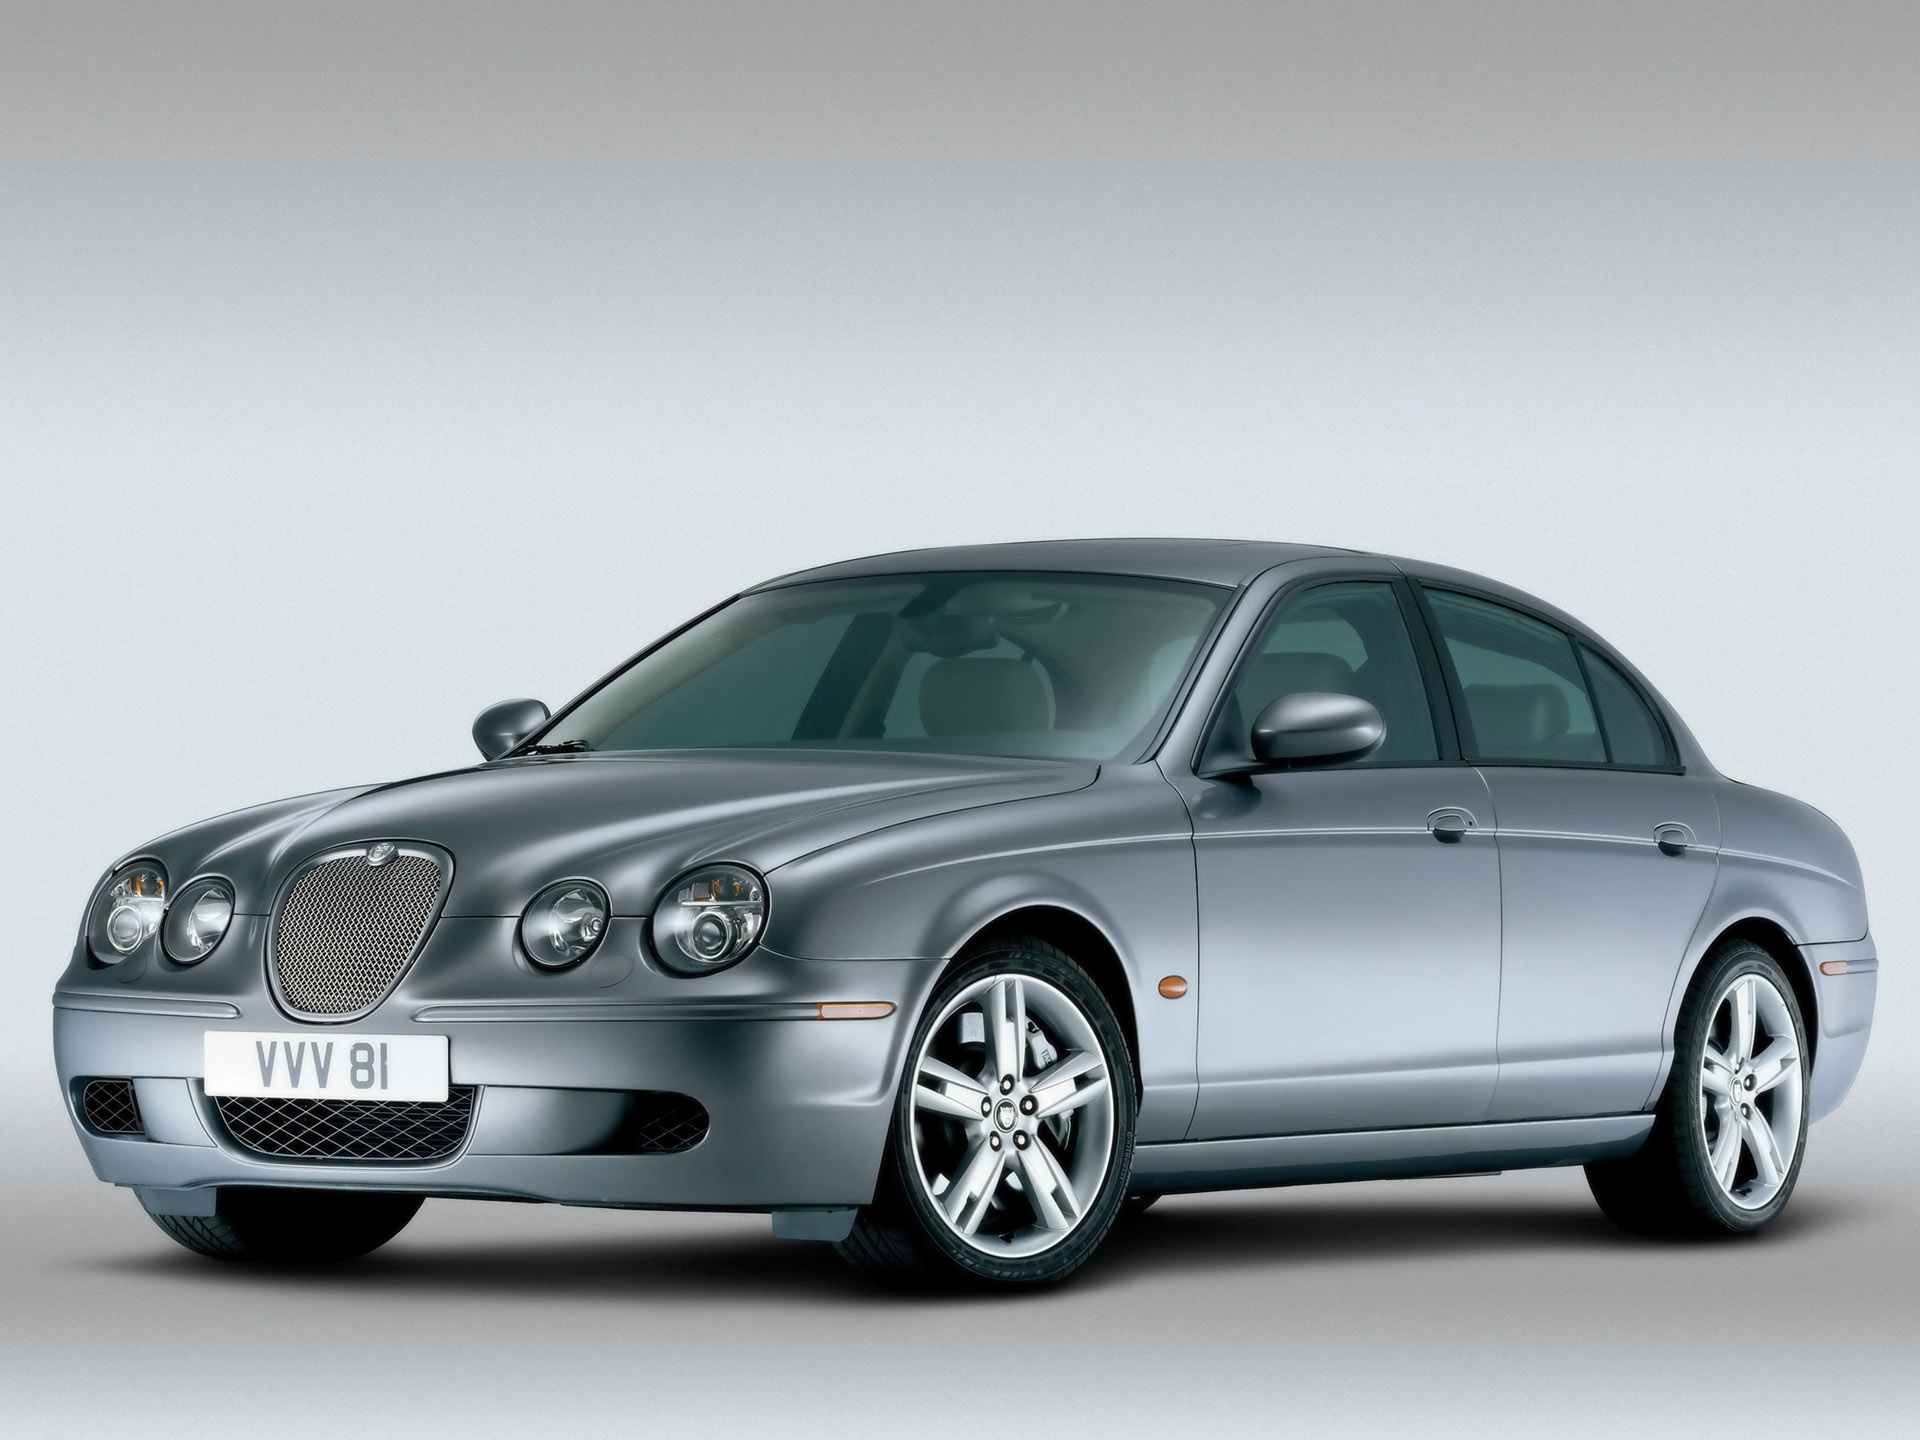 Pictures of jaguar s-type #4